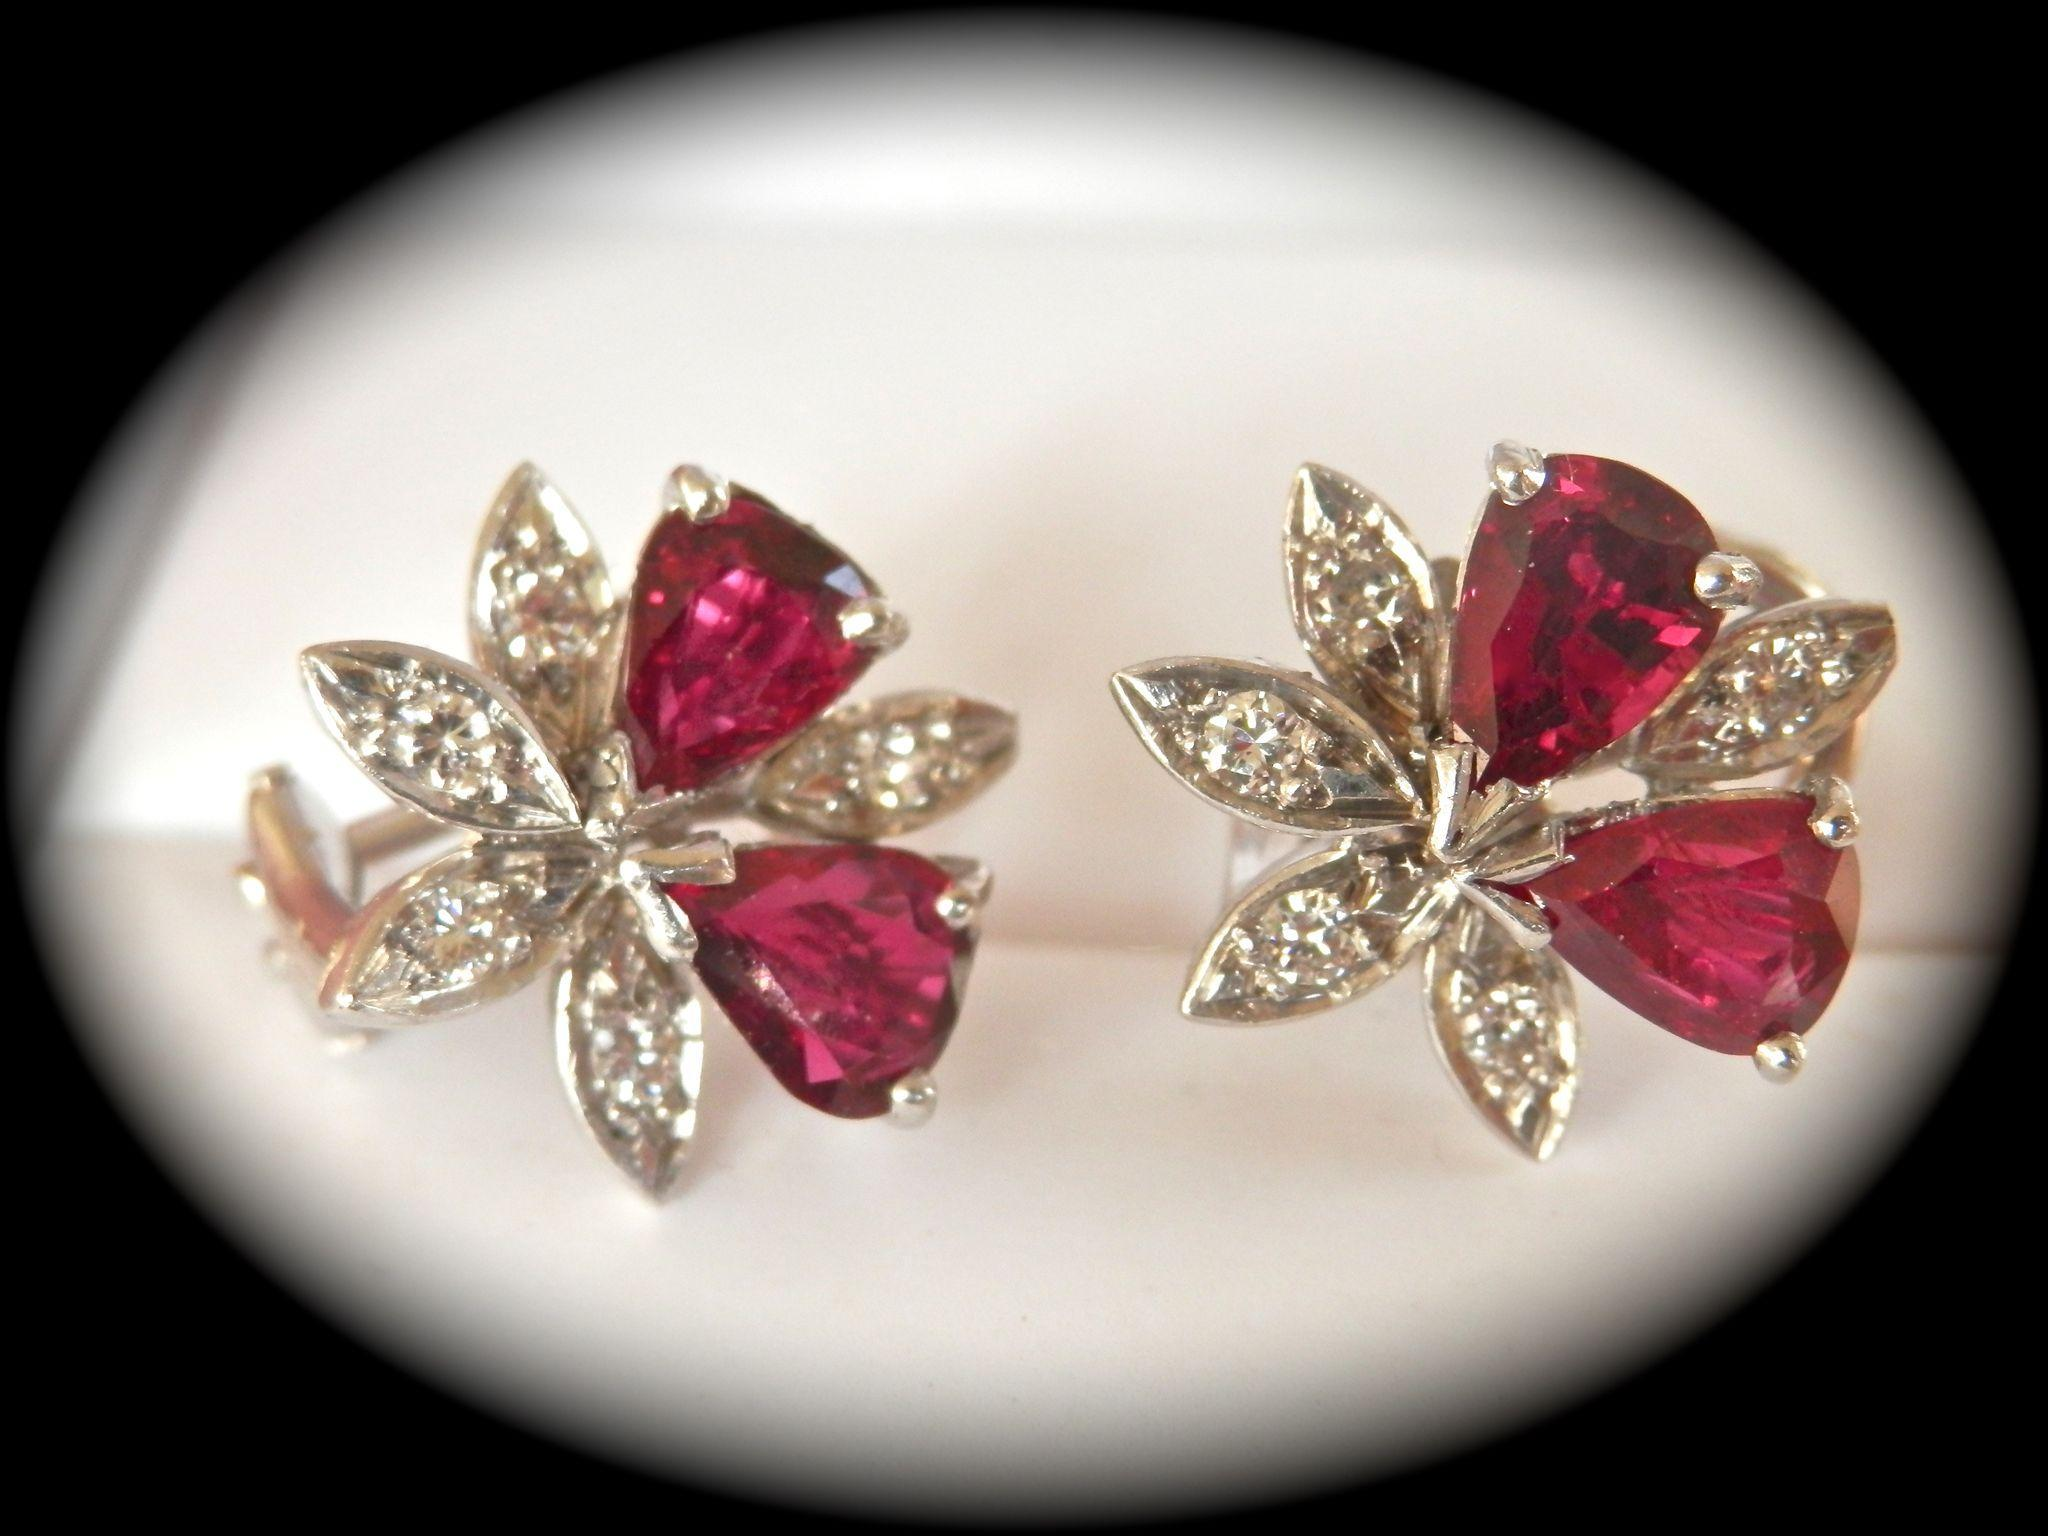 Beautifully Designed 18K W/Gold Ruby Diamond Vintage Earrings